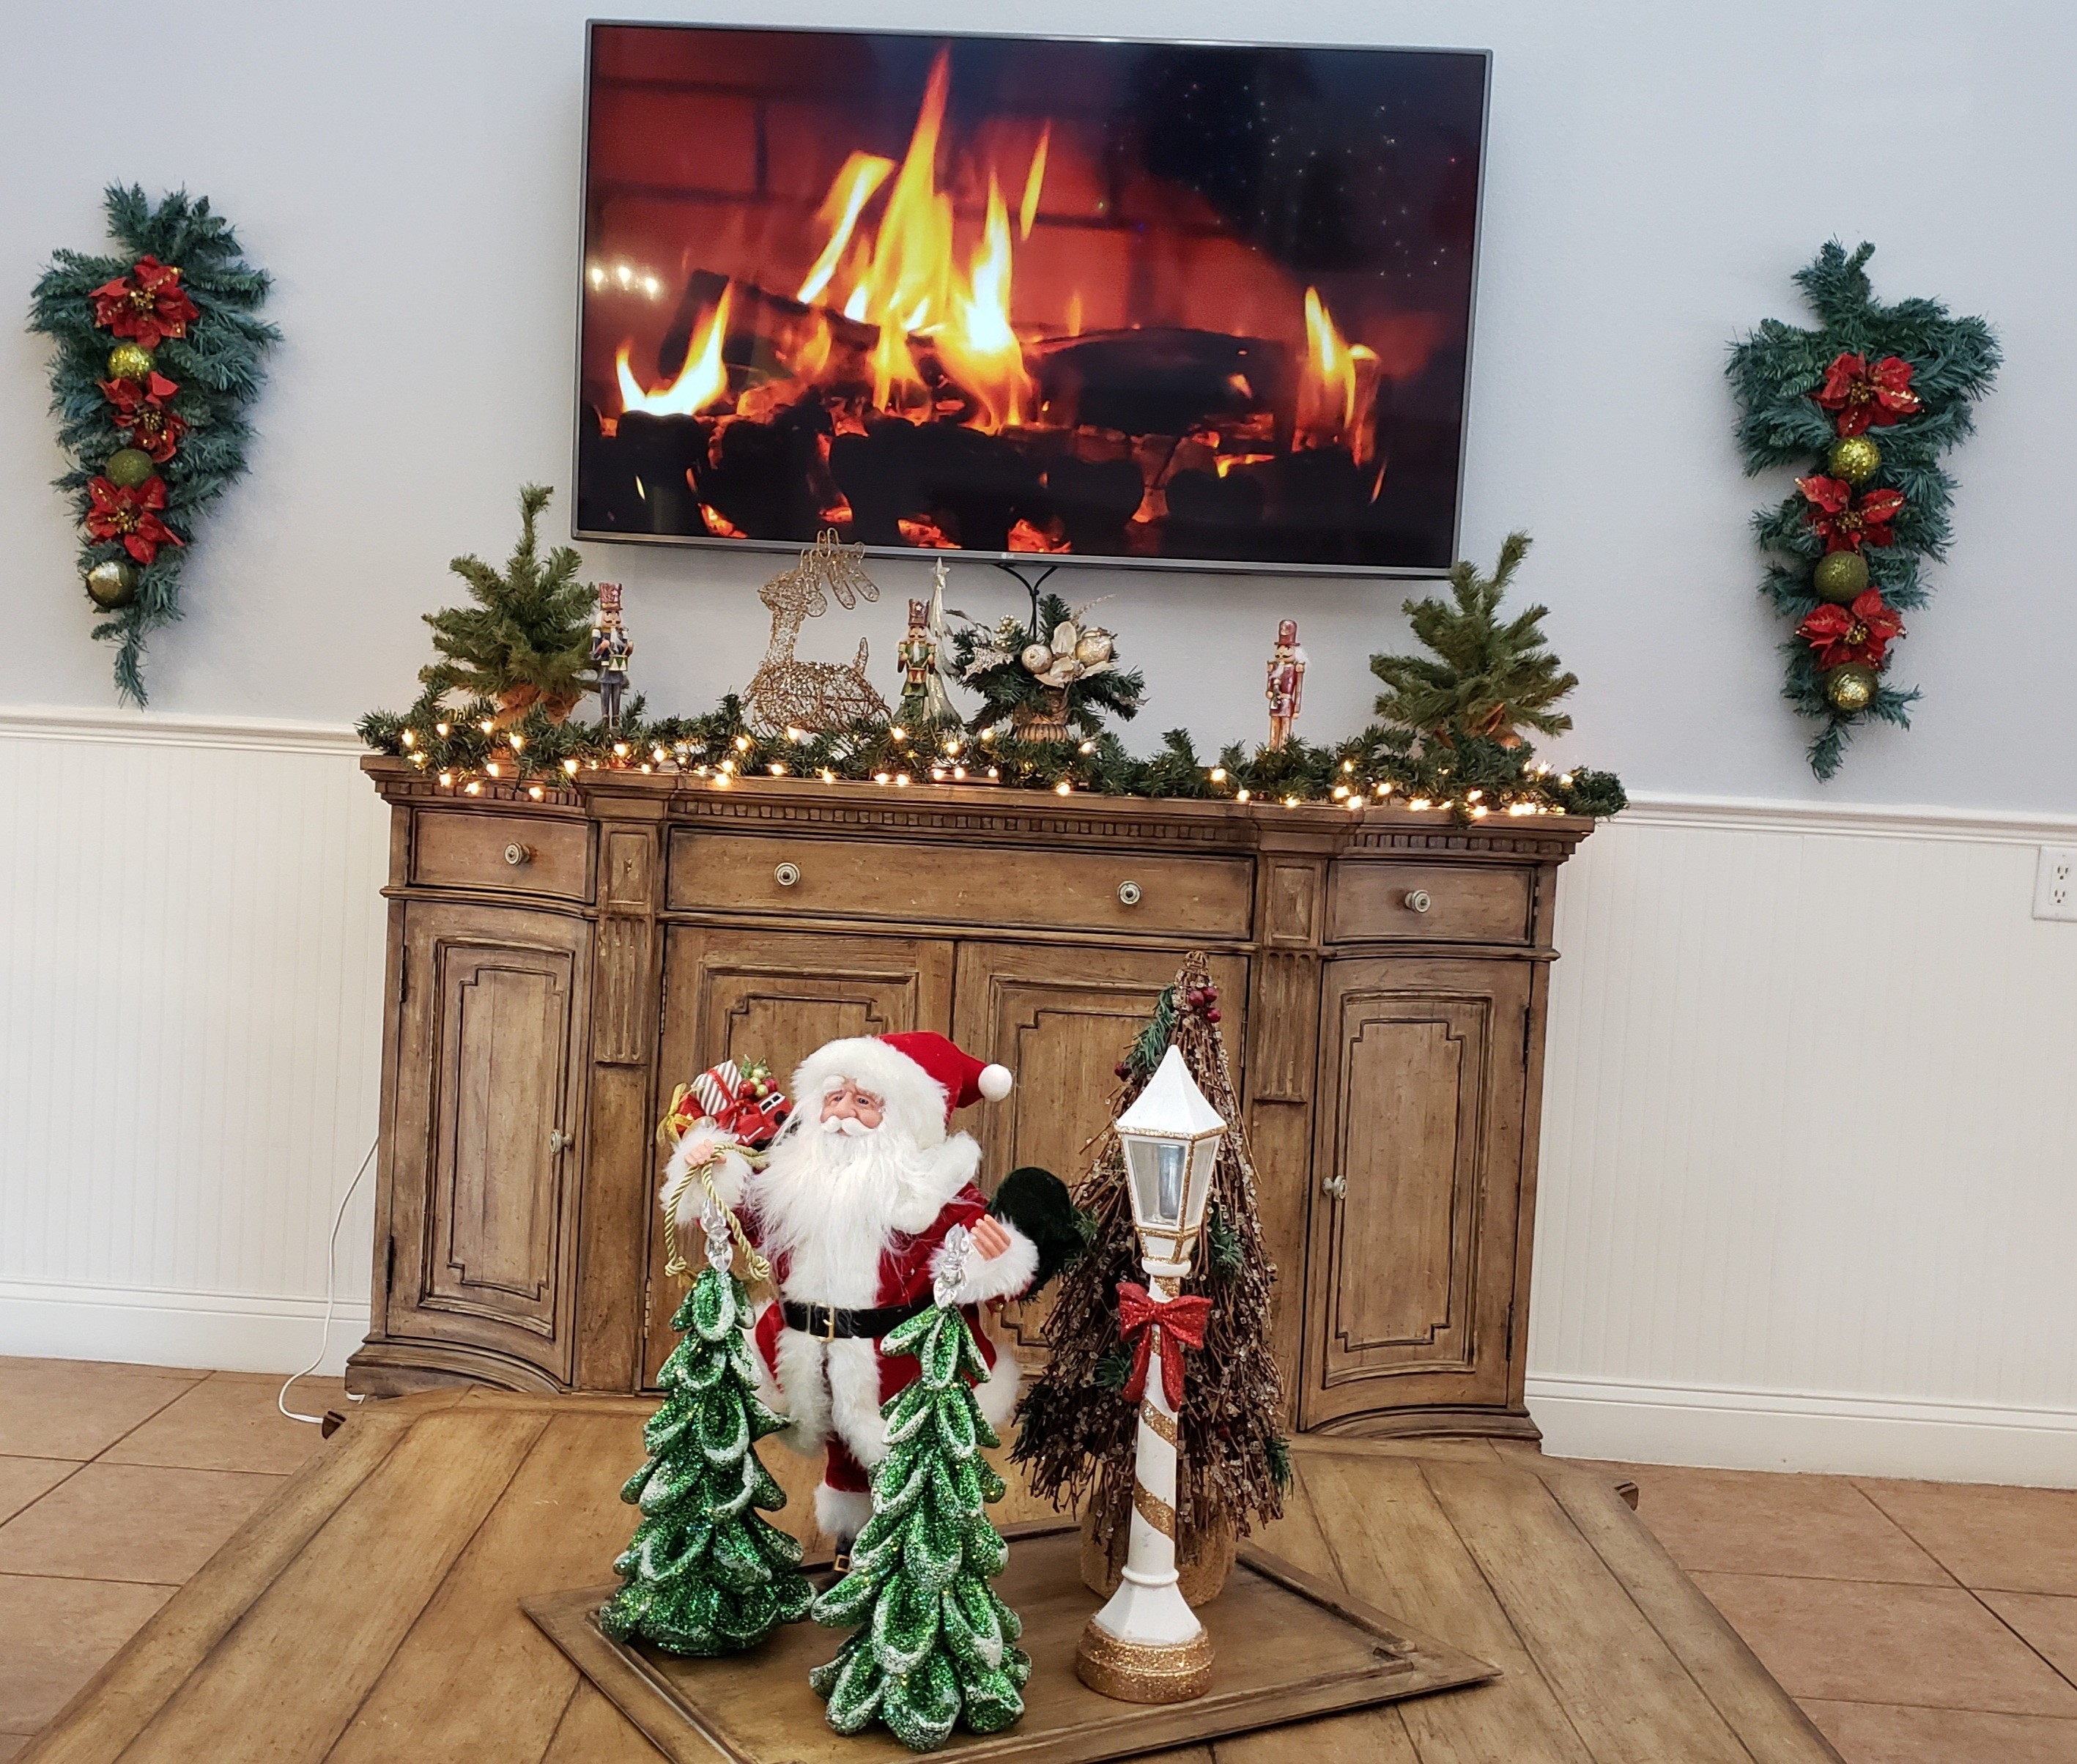 Inside Clubhouse with Christmas Decorations and TV with fireplace on it